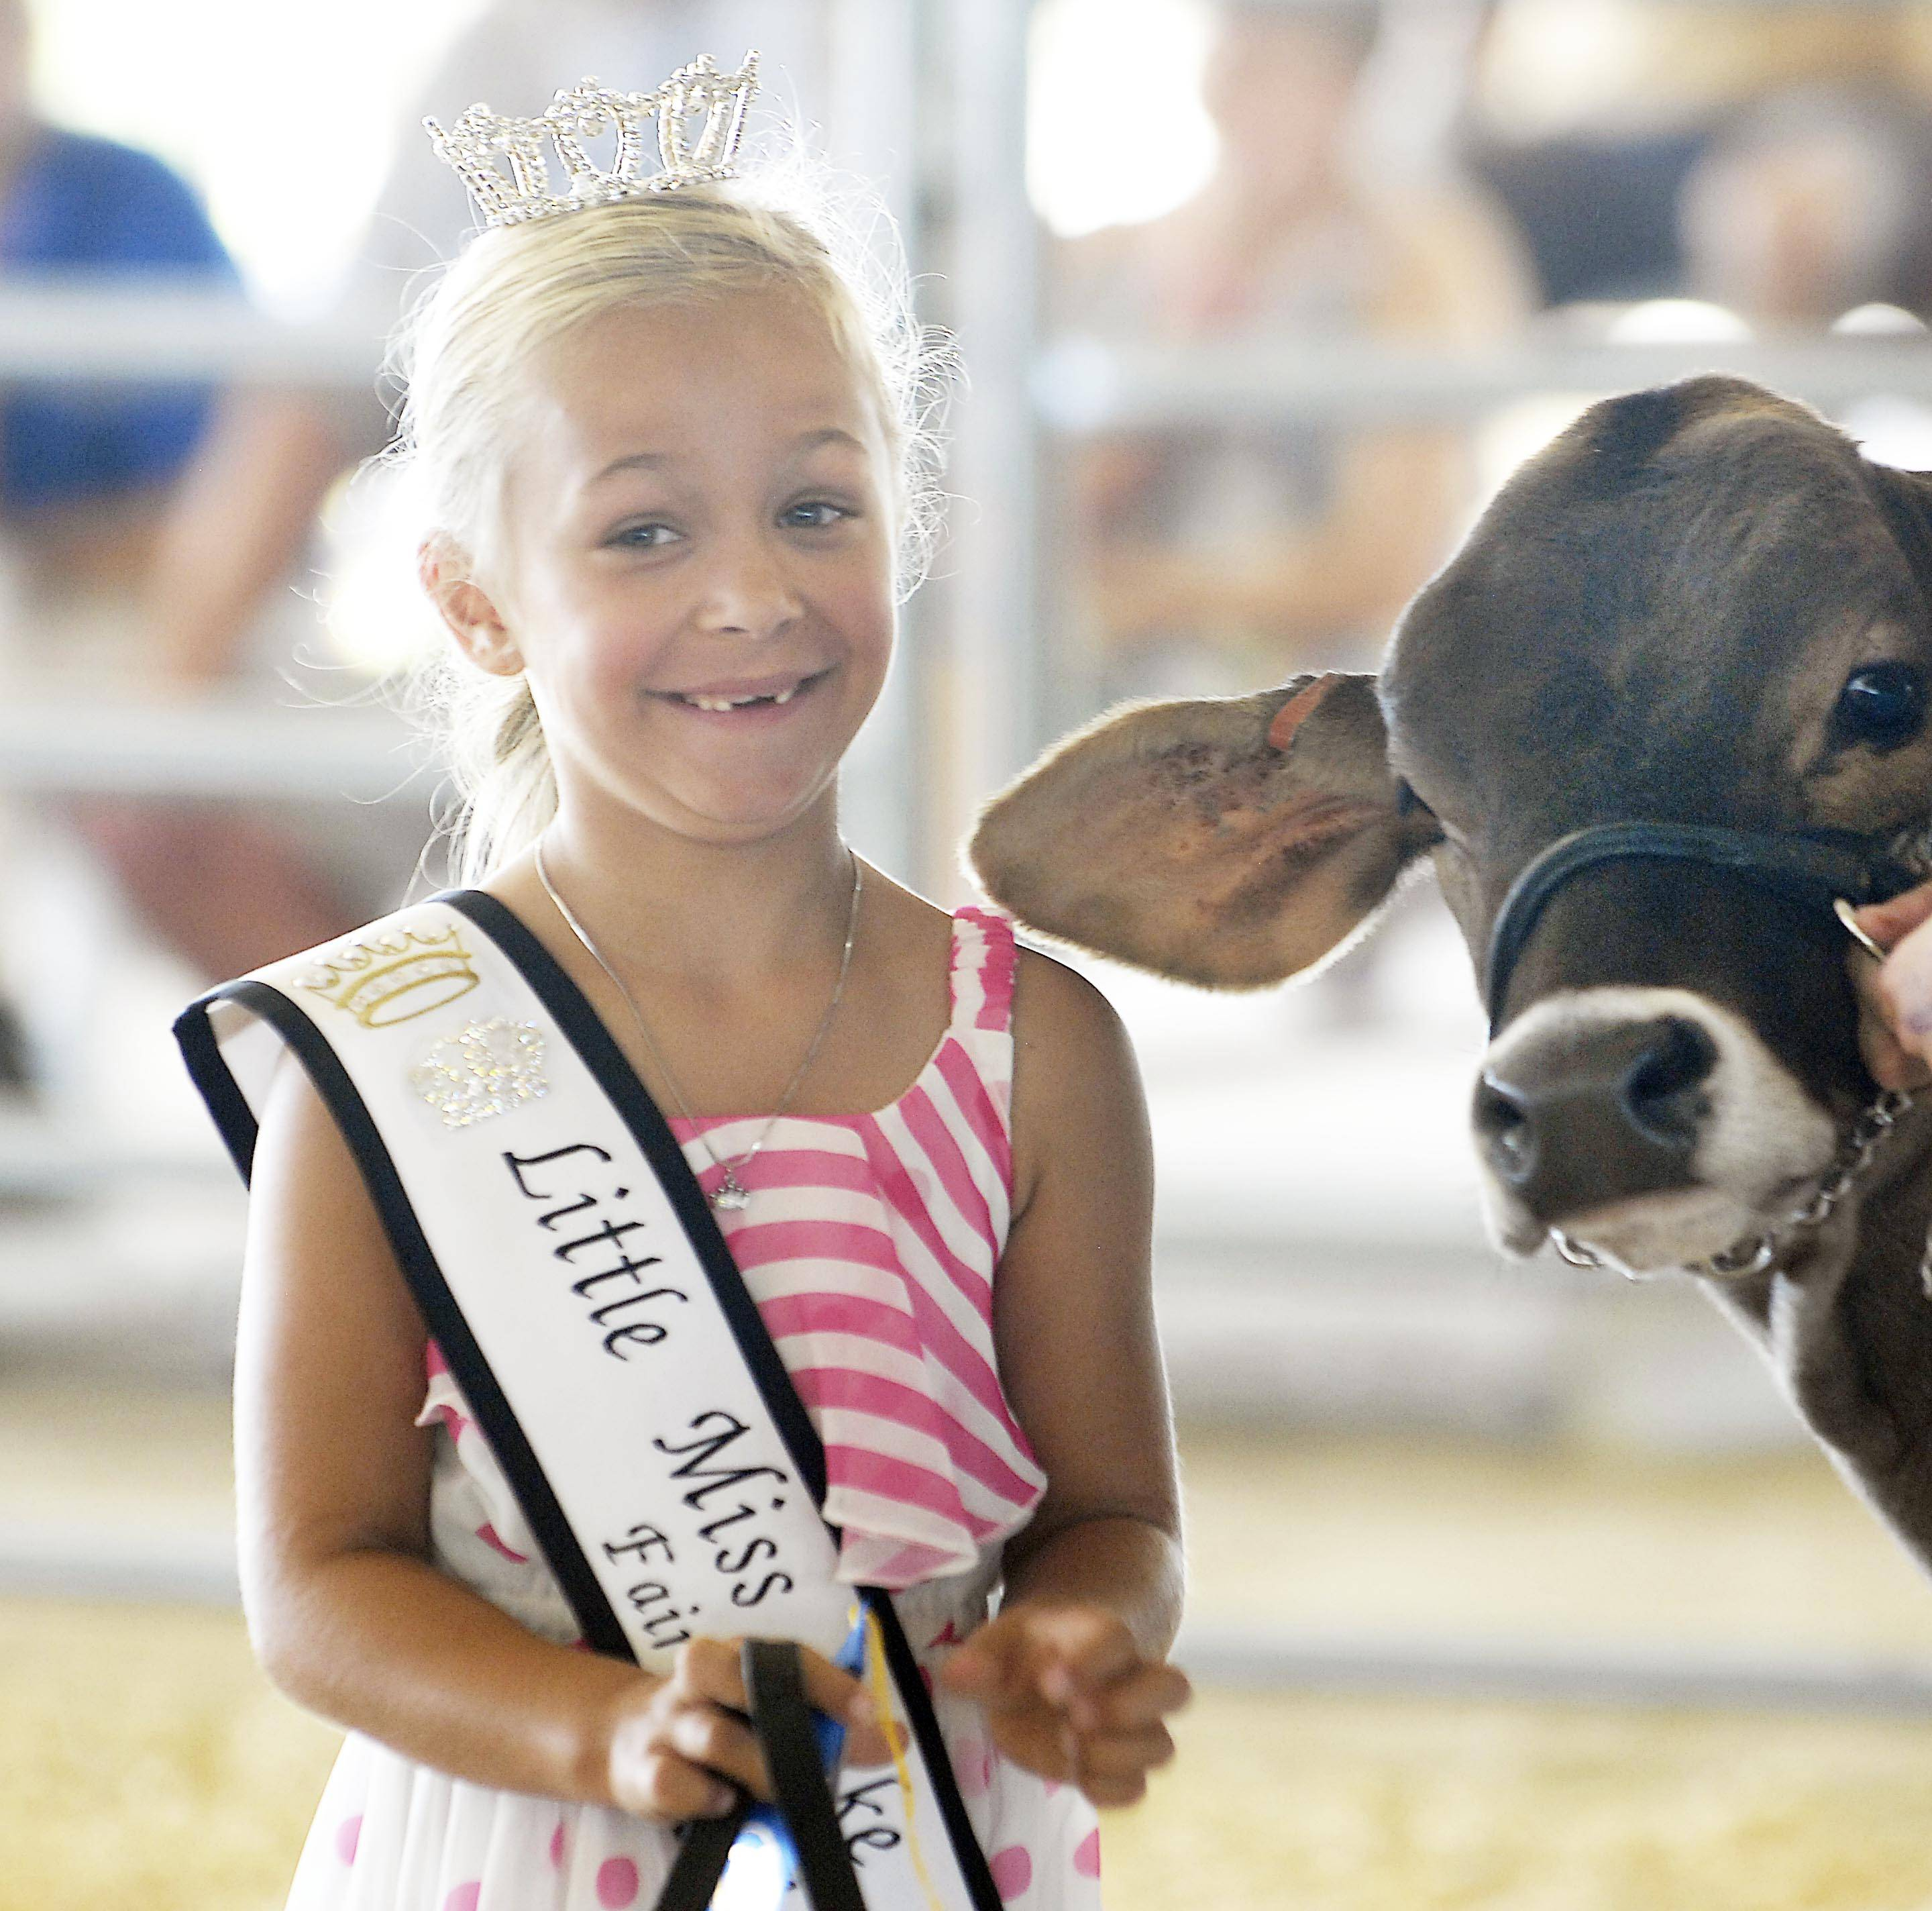 LIttle Miss Lake County Natalie Winquist, 7, of Gurnee, smiles with a dairy cow Friday at the Lake County Fair in Grayslake.